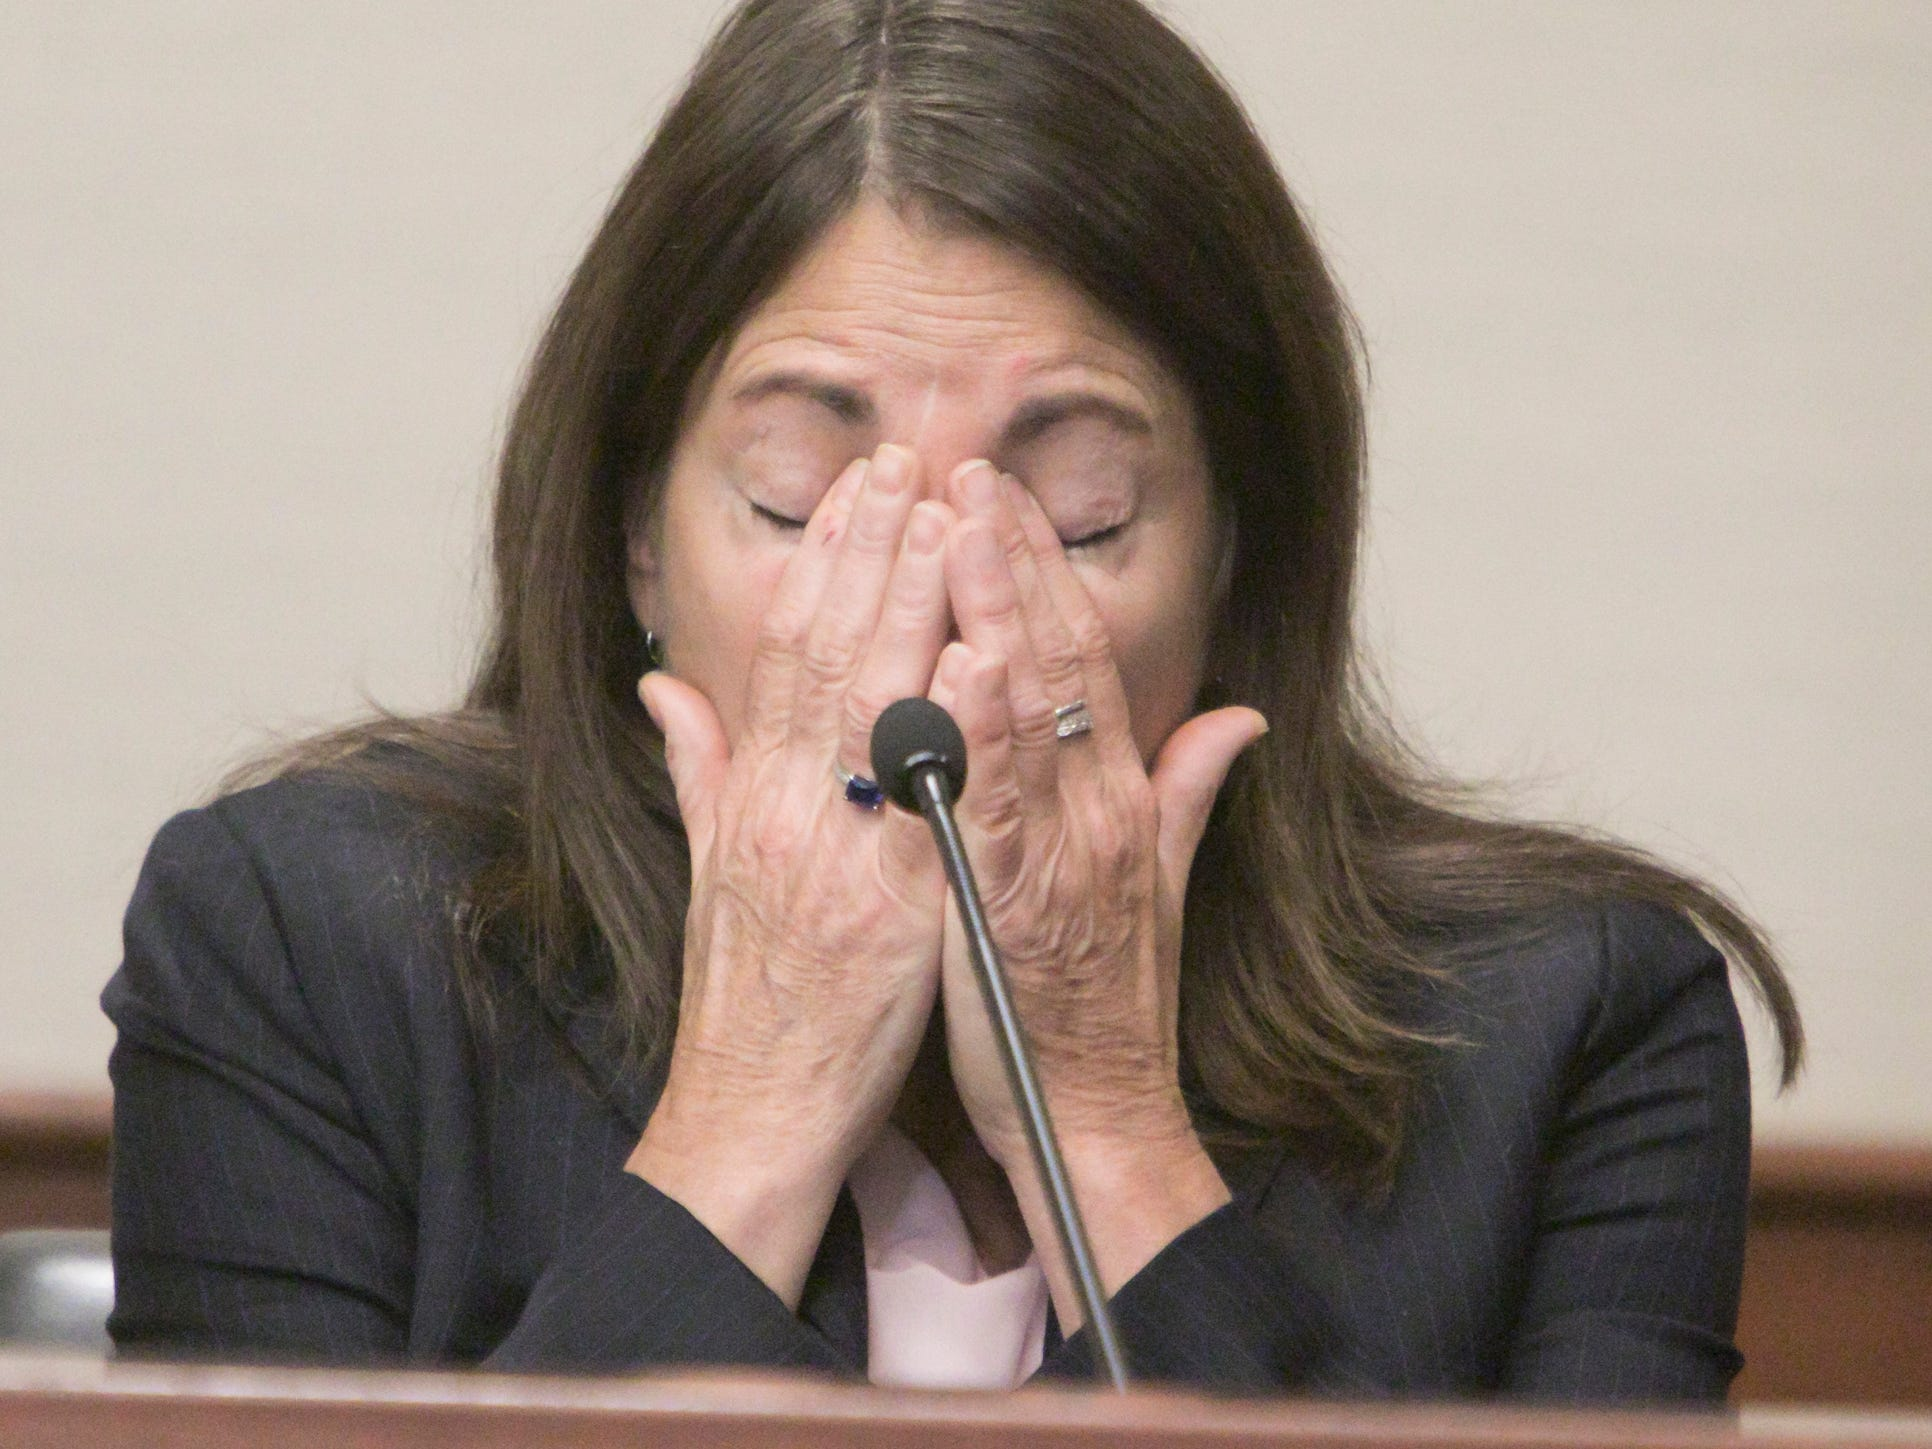 Judge Theresa Brennan reacts when asked to look back on her divorce from husband Don Root during the JTC hearing Monday, Oct. 8, 2018.